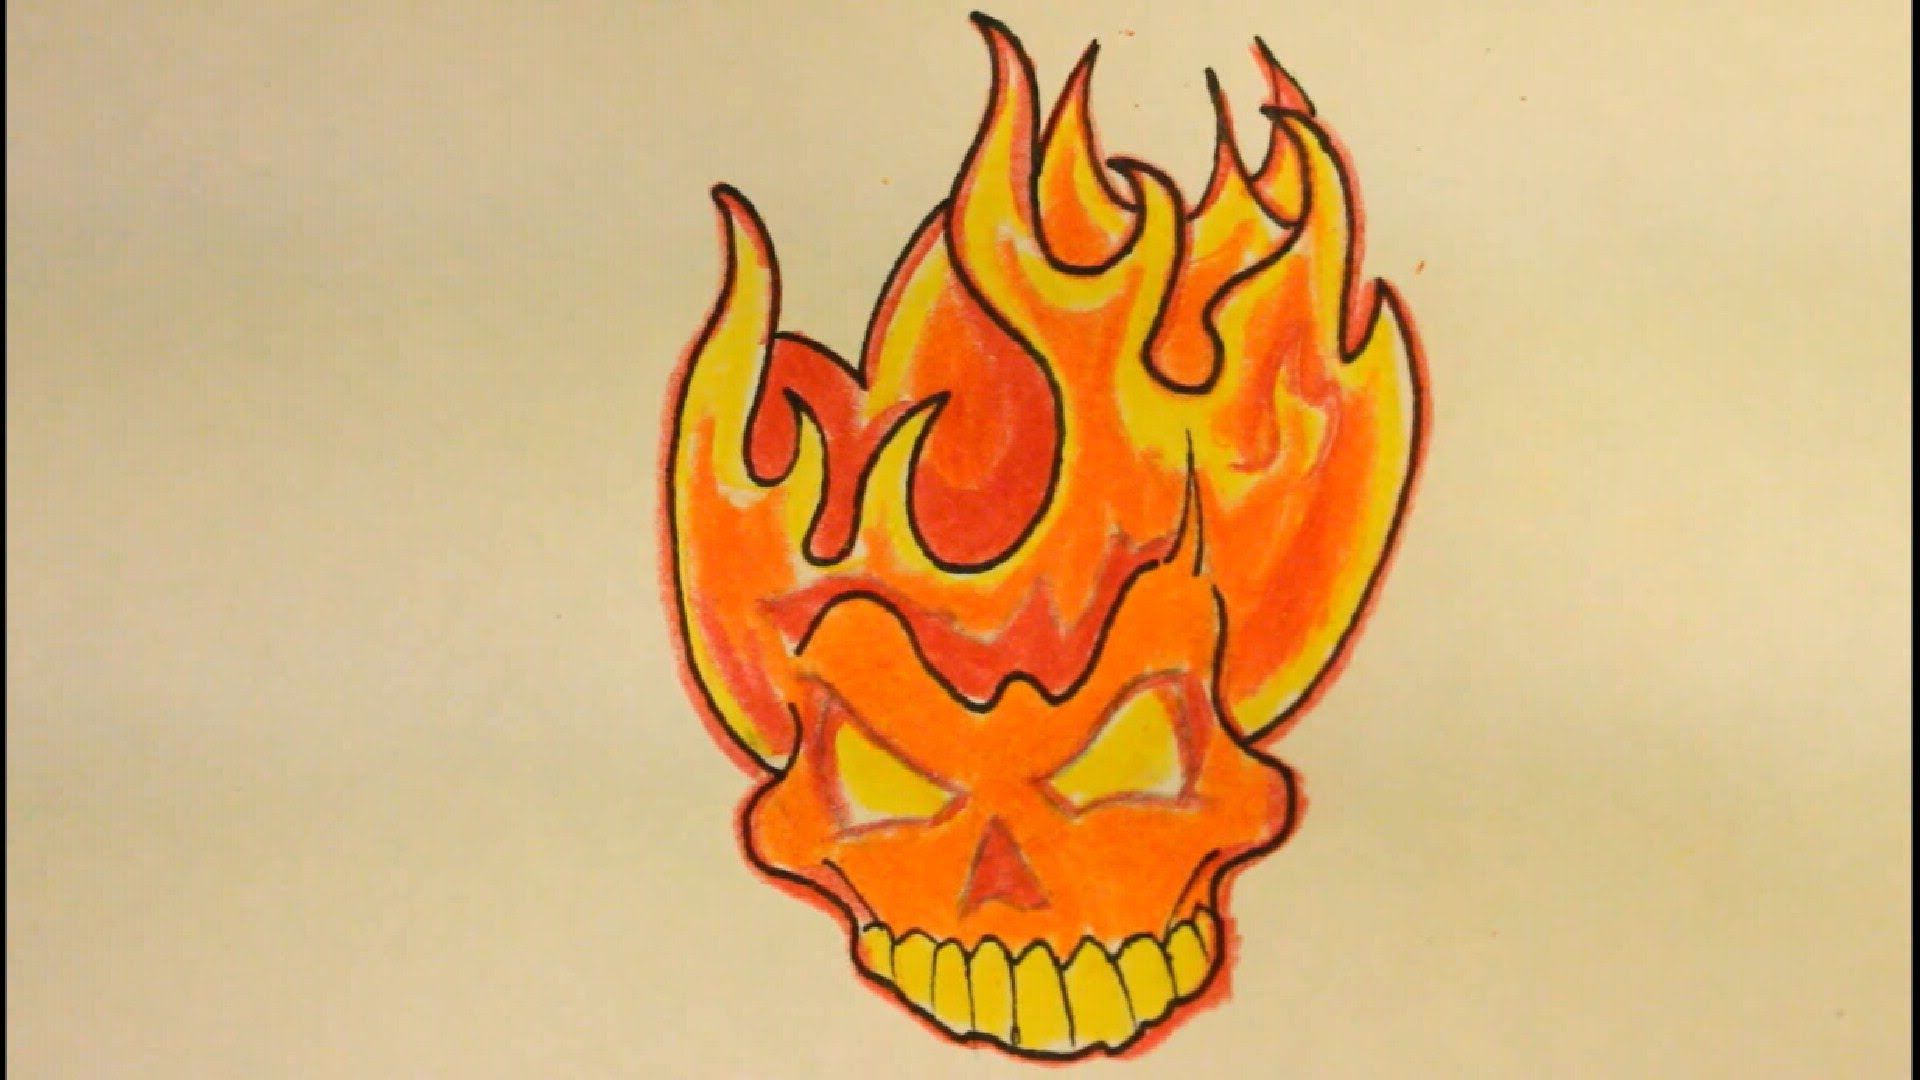 1920x1080 How To Draw A Skull On Fire With Flameseasy For Beginners